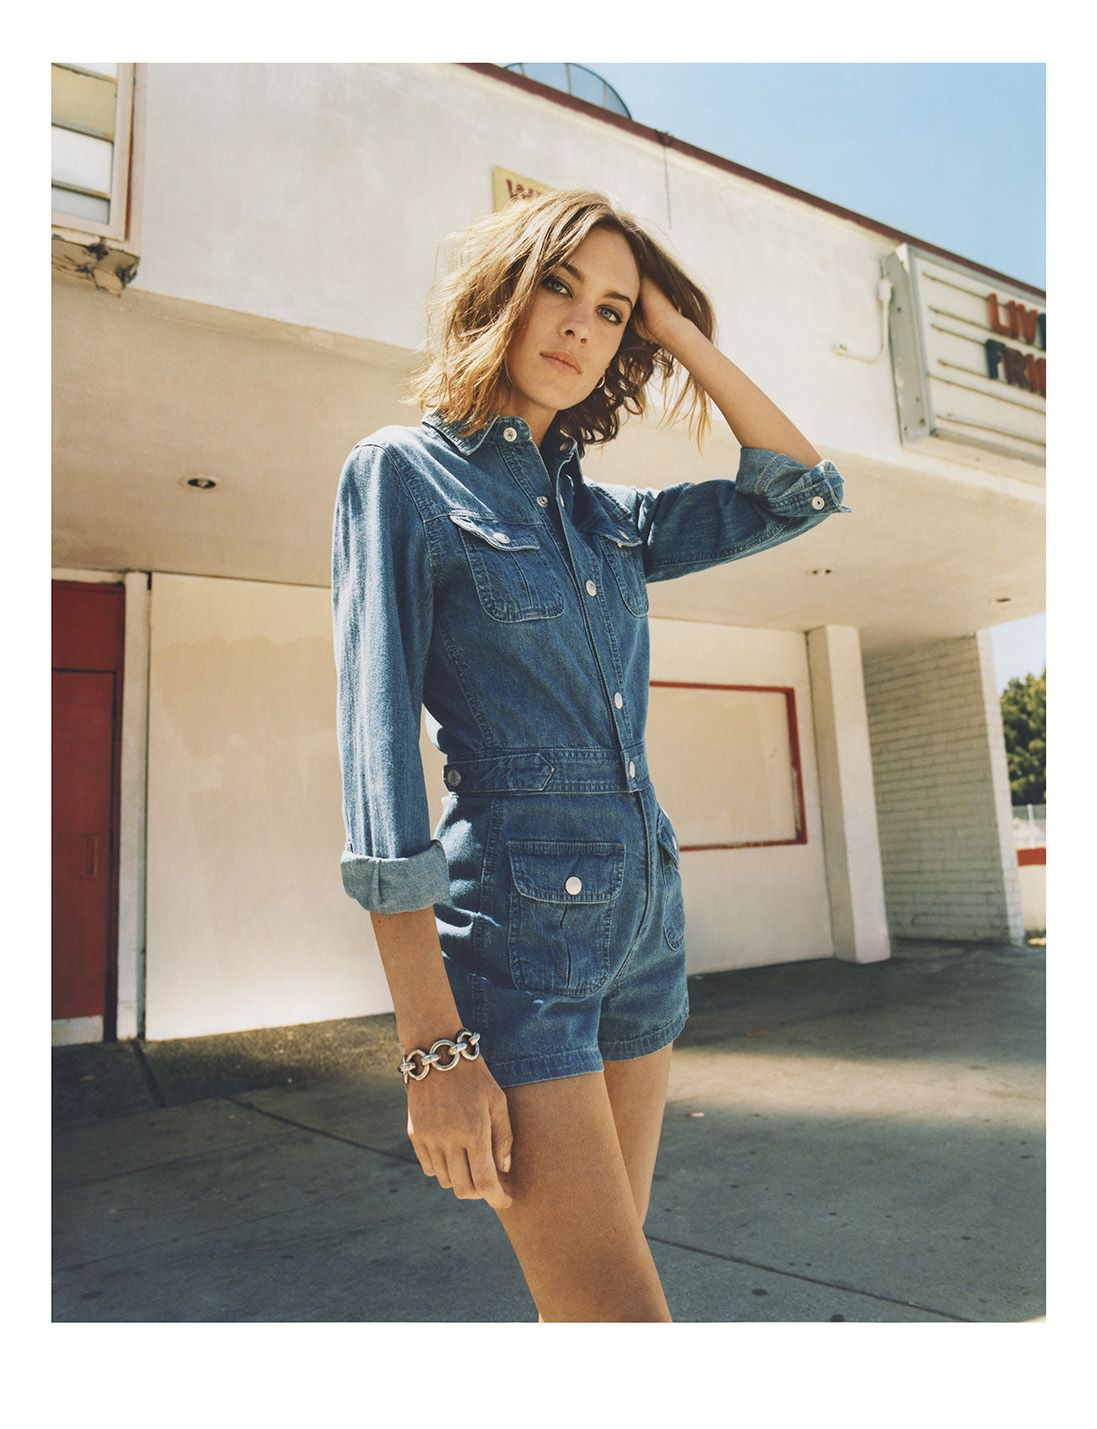 DUNGAREES - Pinafores Alexa Chung For Ag Jeans Cheap Big Discount Outlet Cheap Prices 2018 Clearance Many Kinds Of Discount Wide Range Of 9BHYEHD